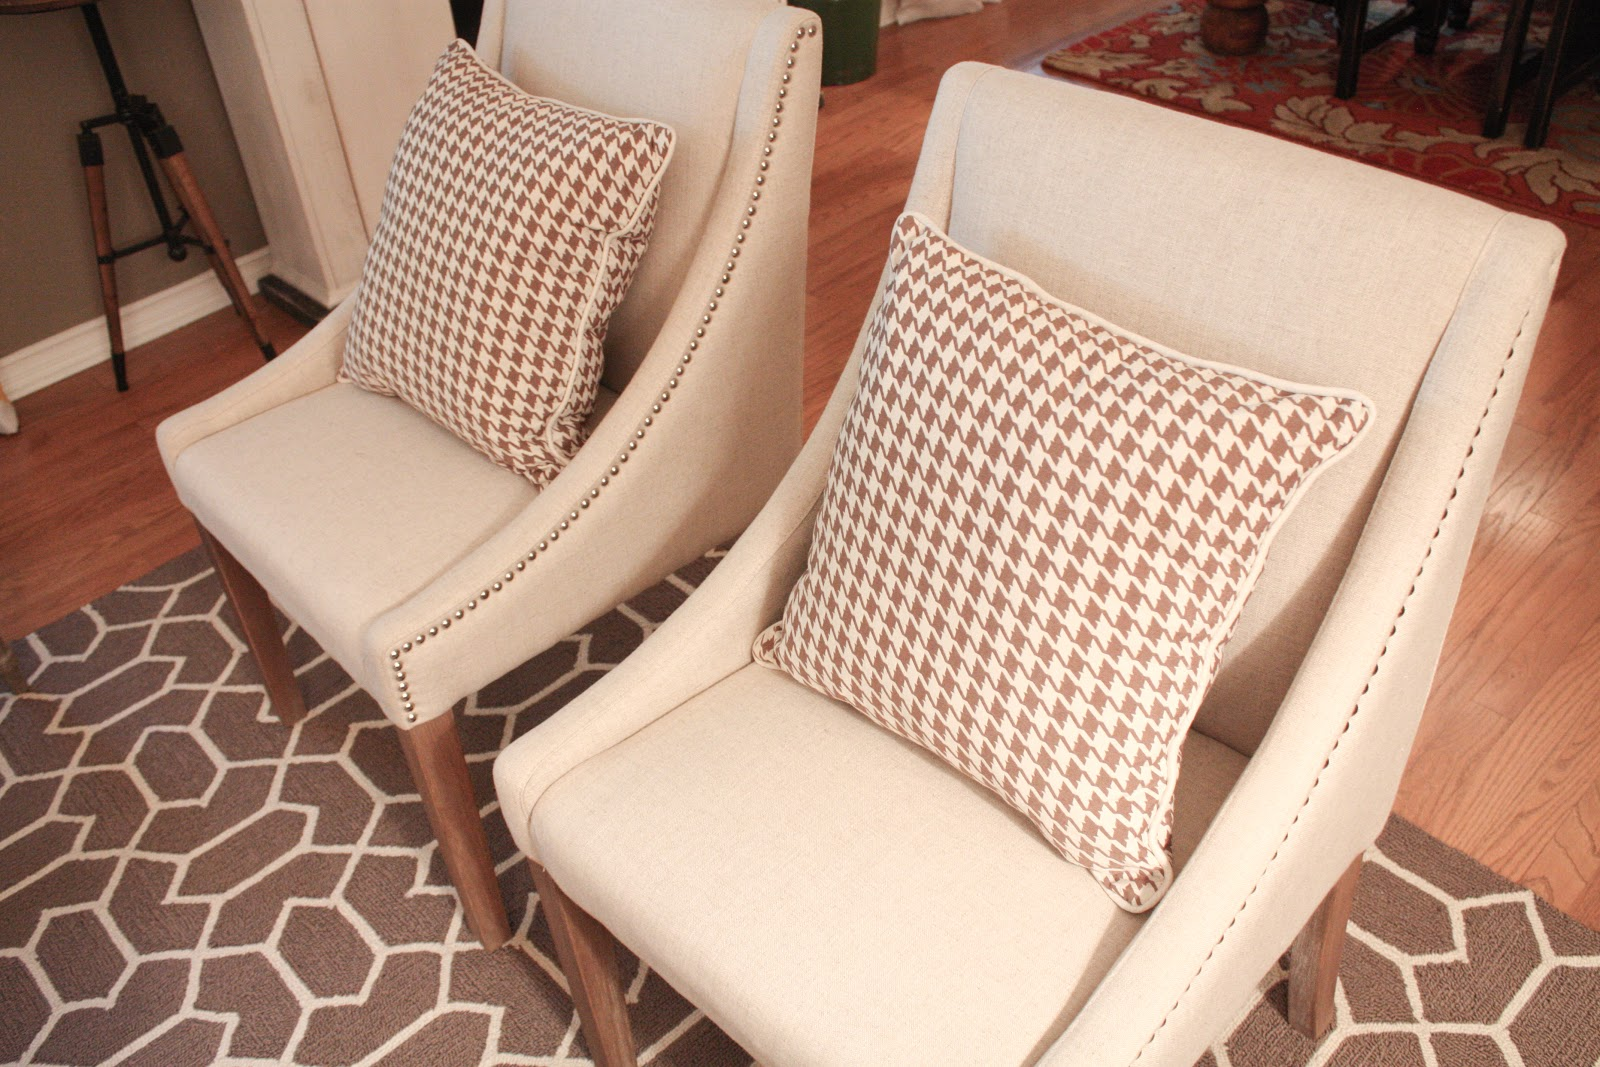 Restoration Hardware Marseilles Chair With Cooler Built In The Blissful Bee Designer Brands Vs